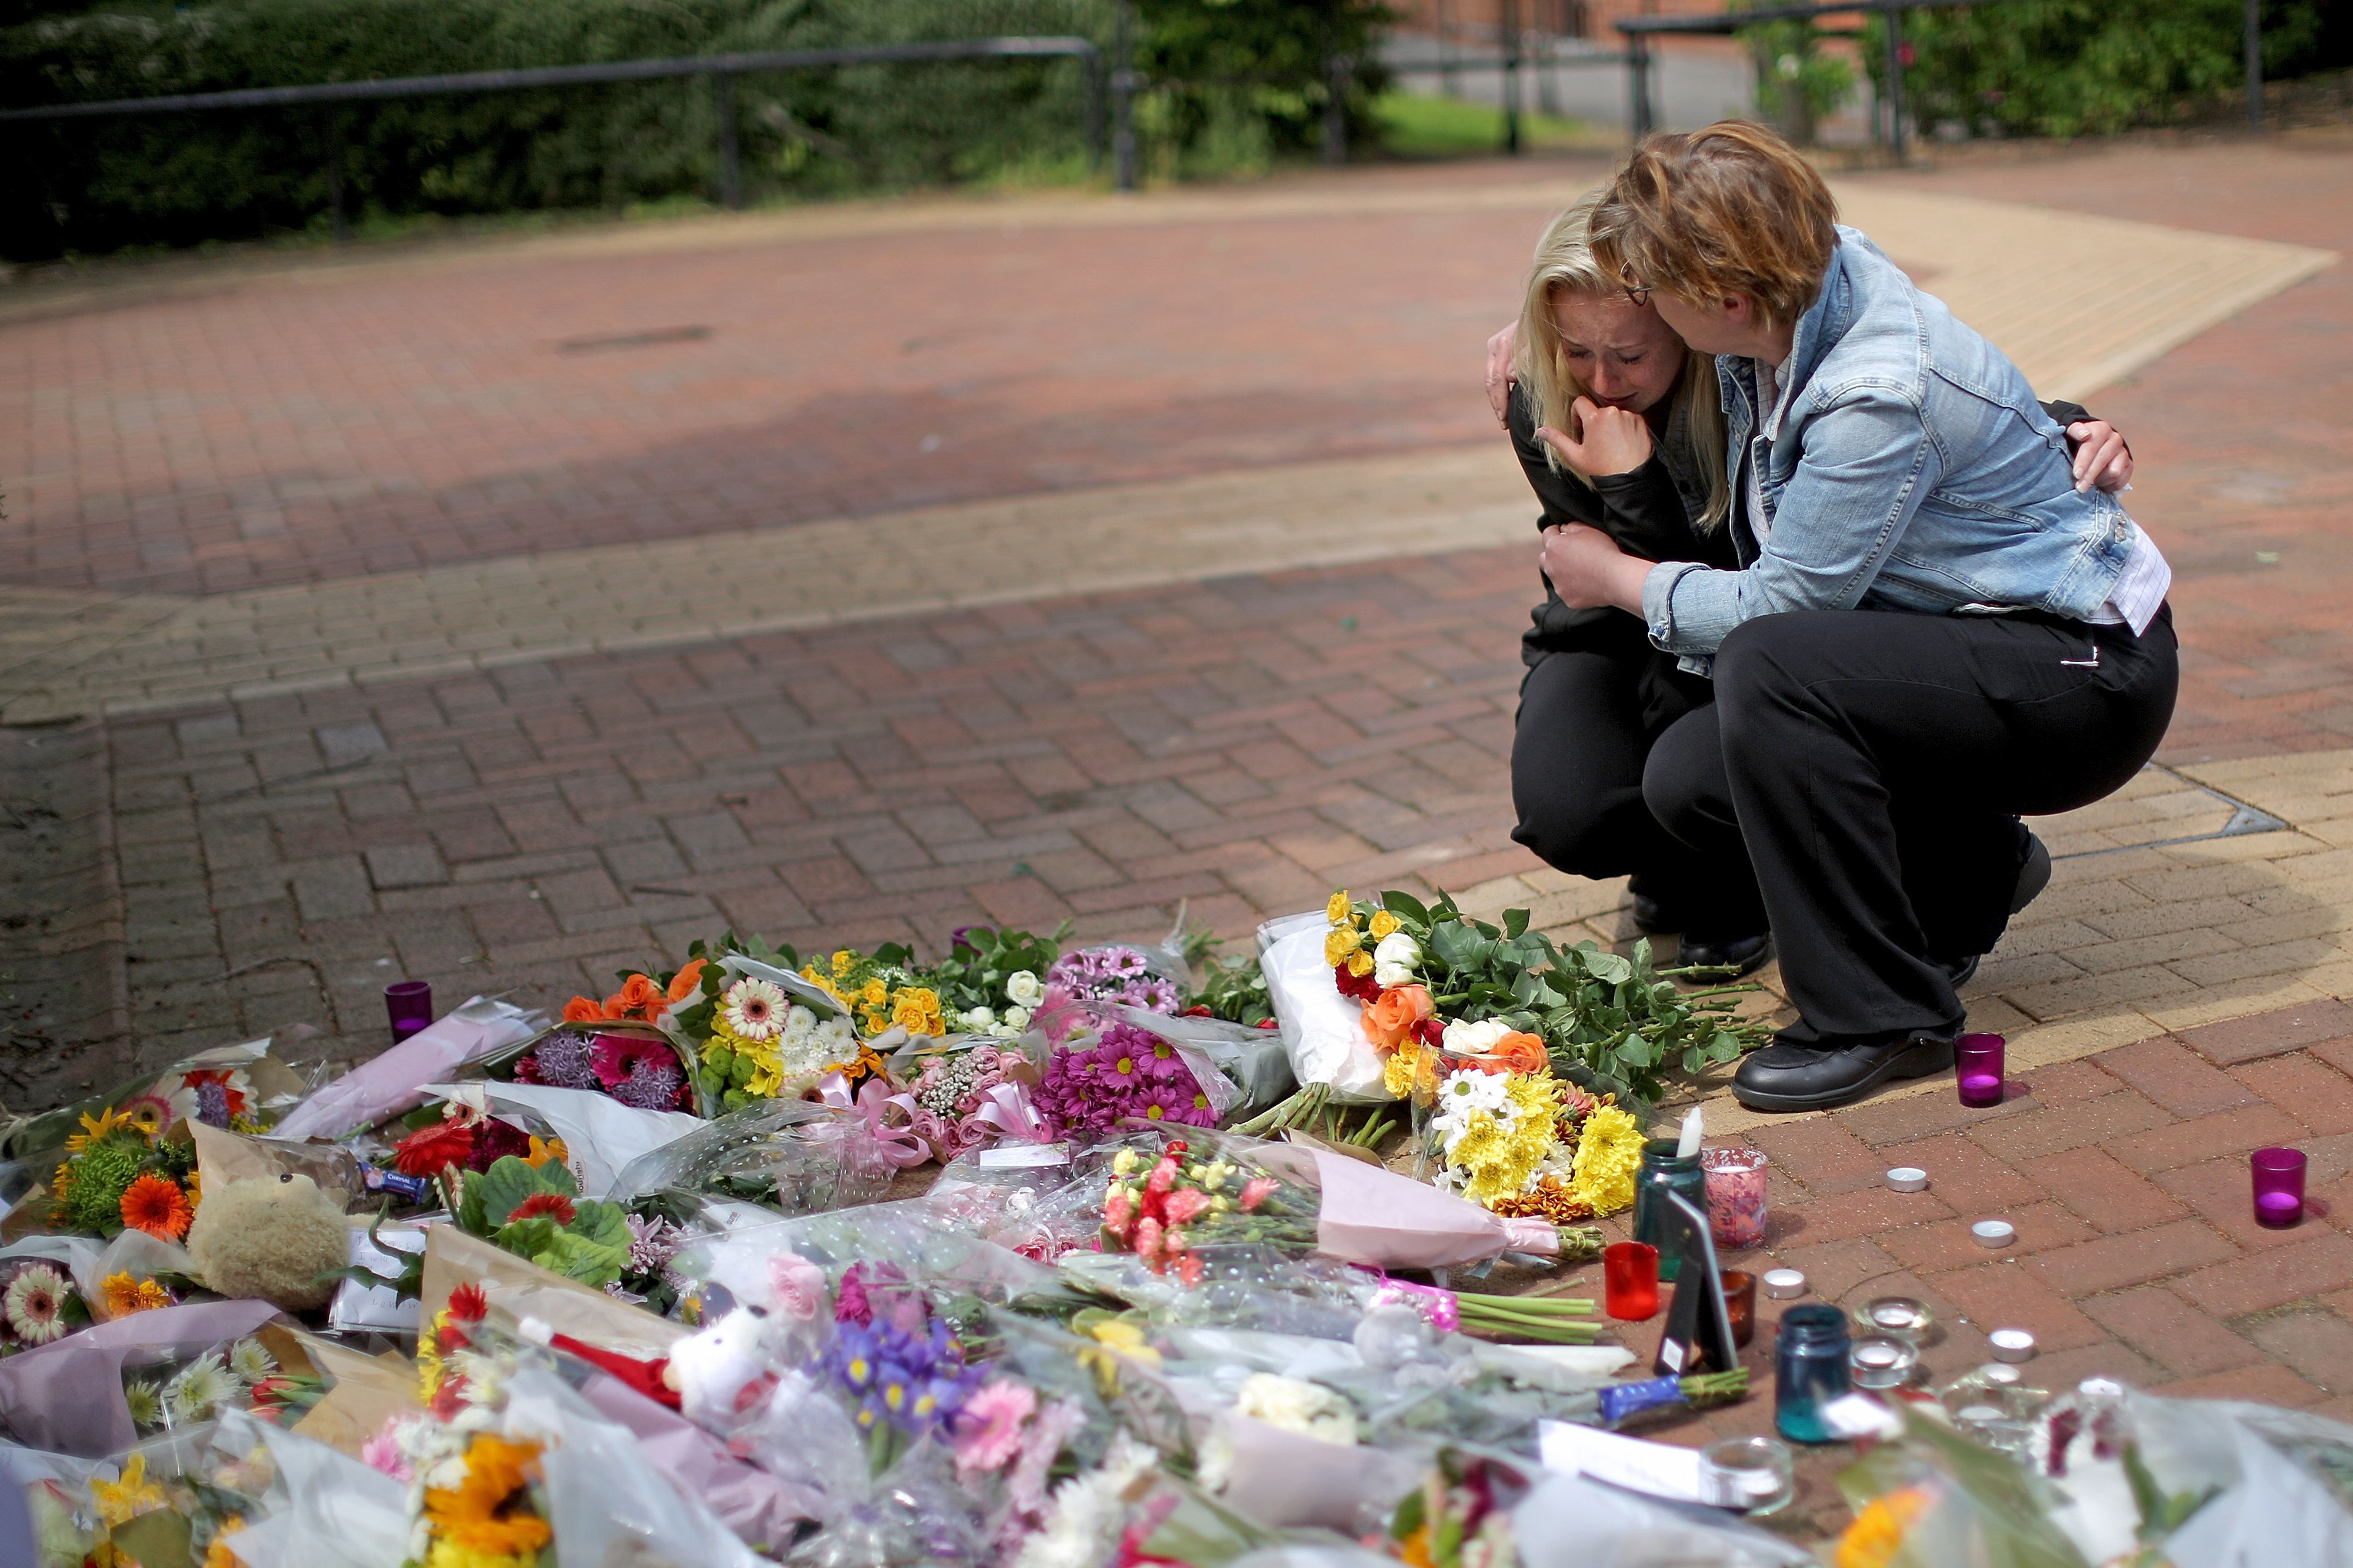 Manchester Bombing Victim's Family Criticises Government After Daughter's